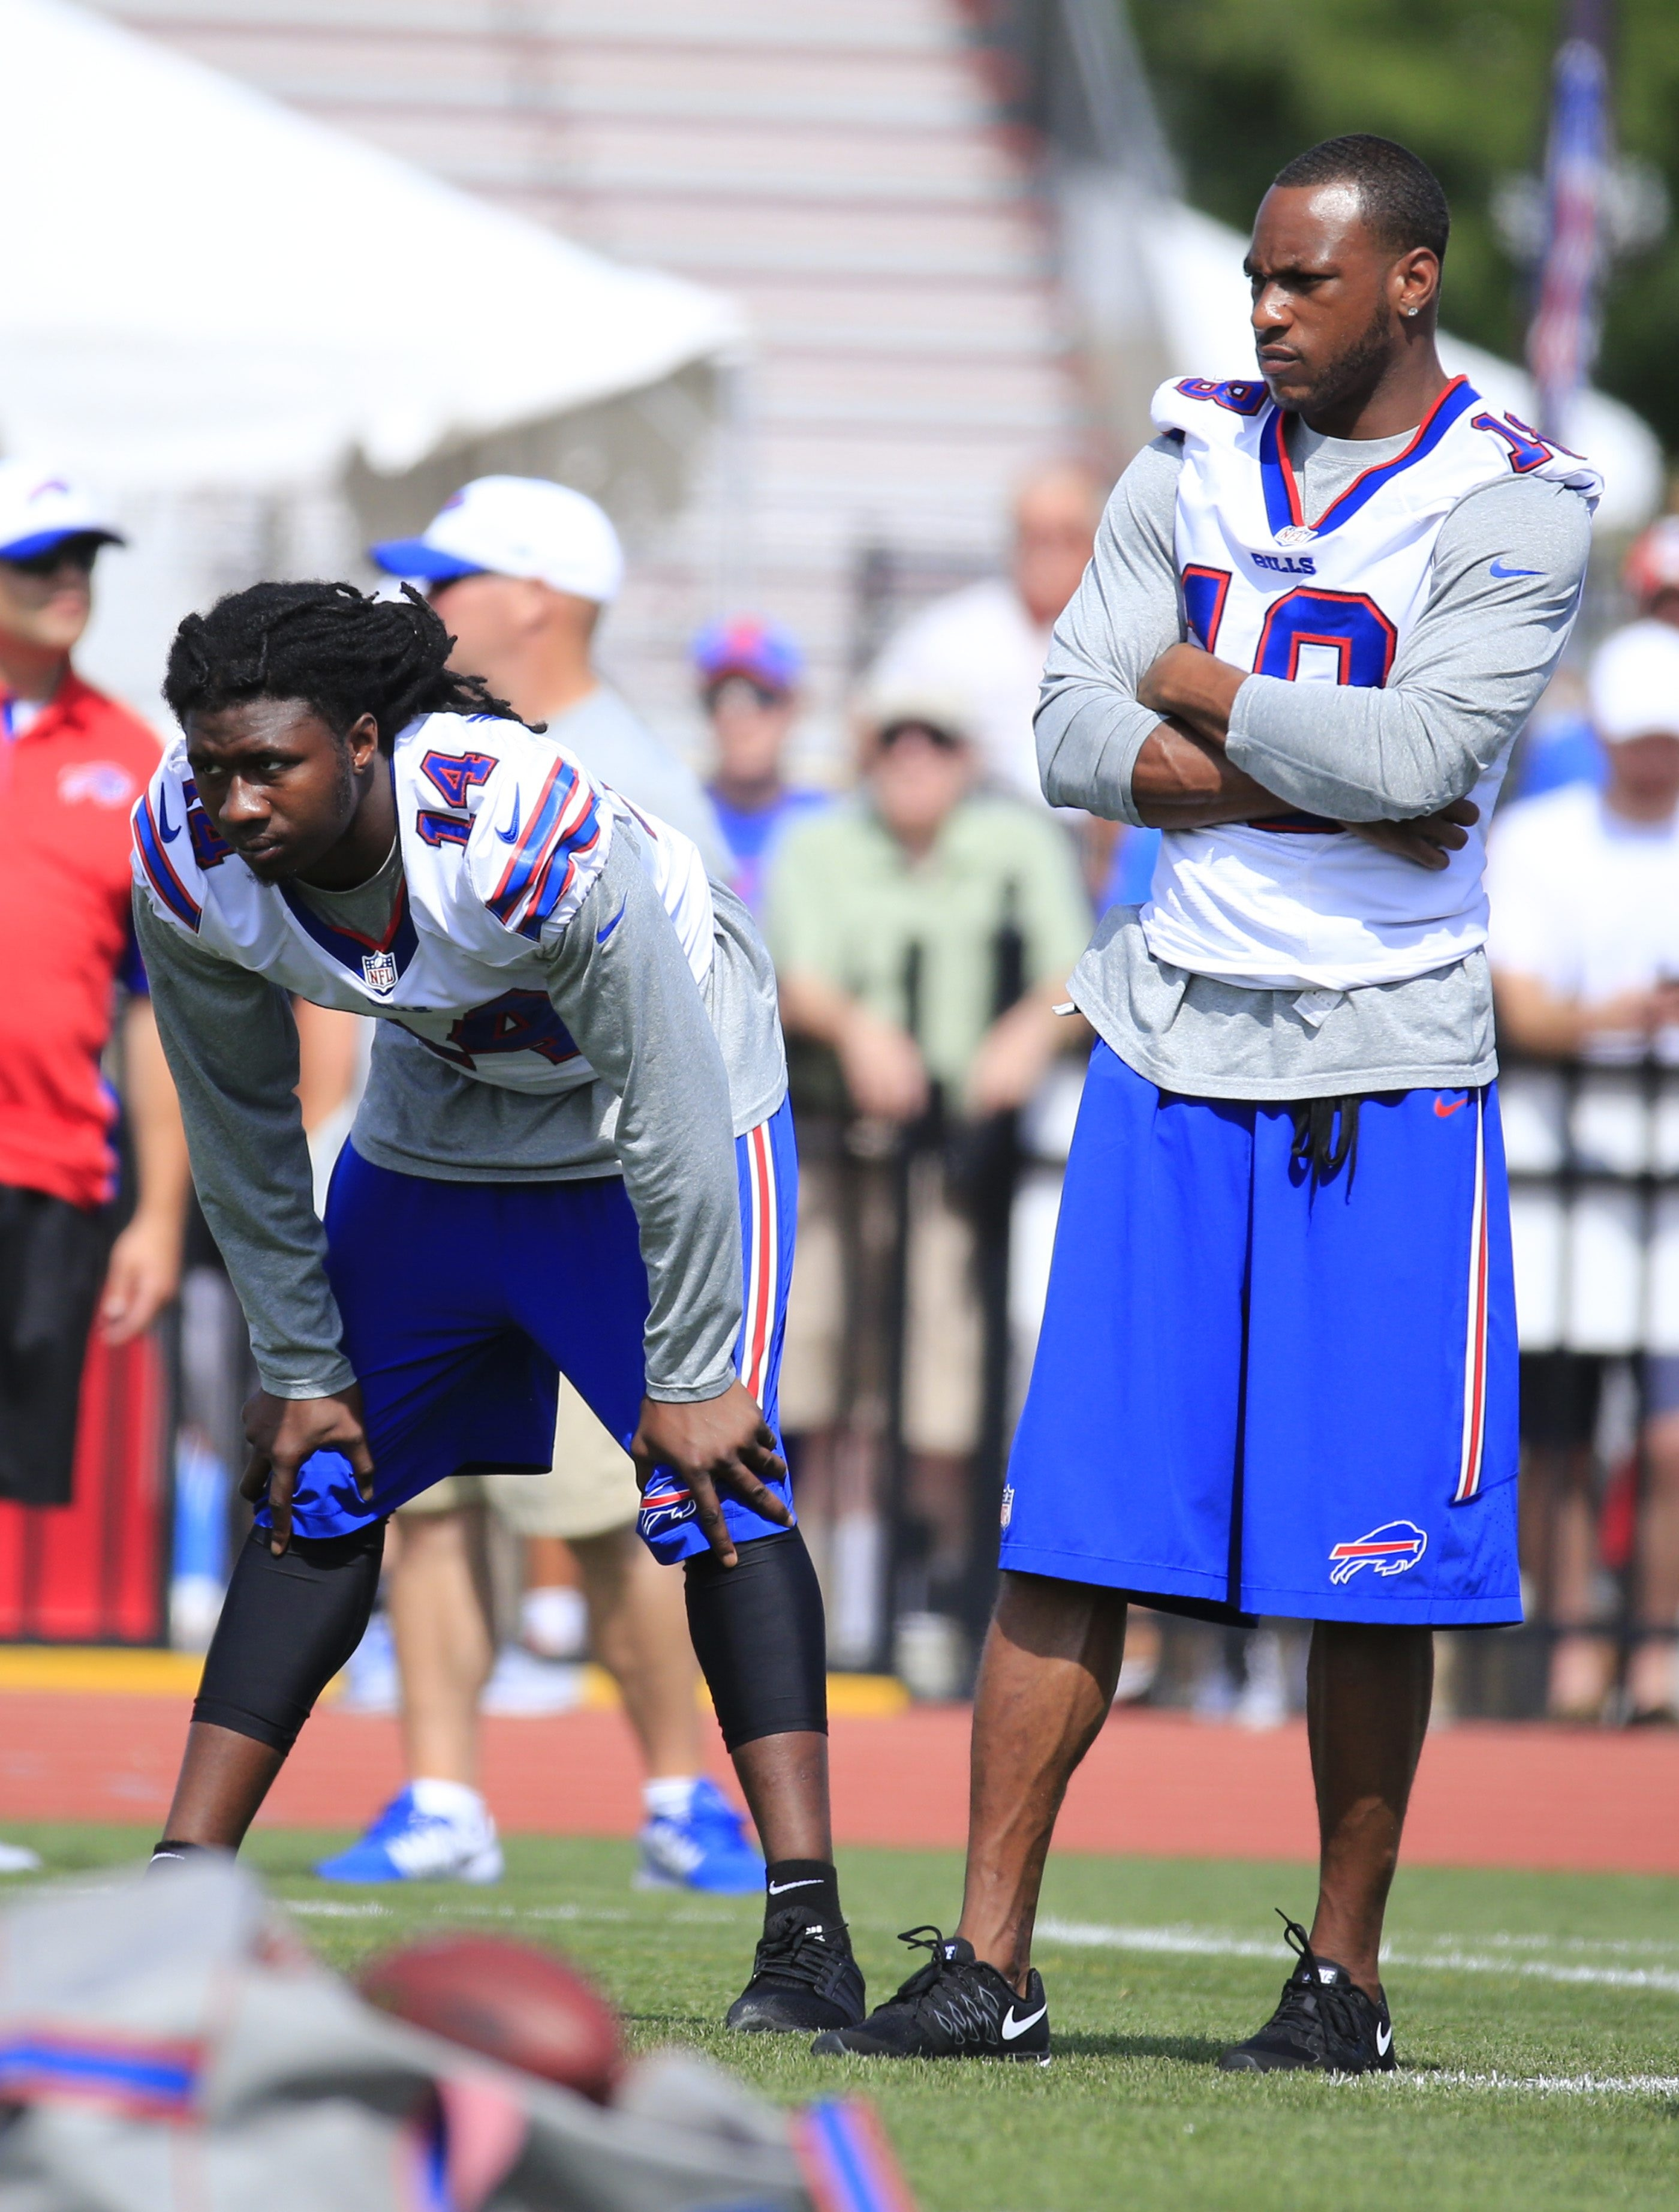 Buffalo Bills Wide receivers Sammy Watkins and Percy Harvin watch  during training camp at St. John Fisher College on Friday, Aug. 7, 2015.  (Harry Scull Jr/Buffalo News)